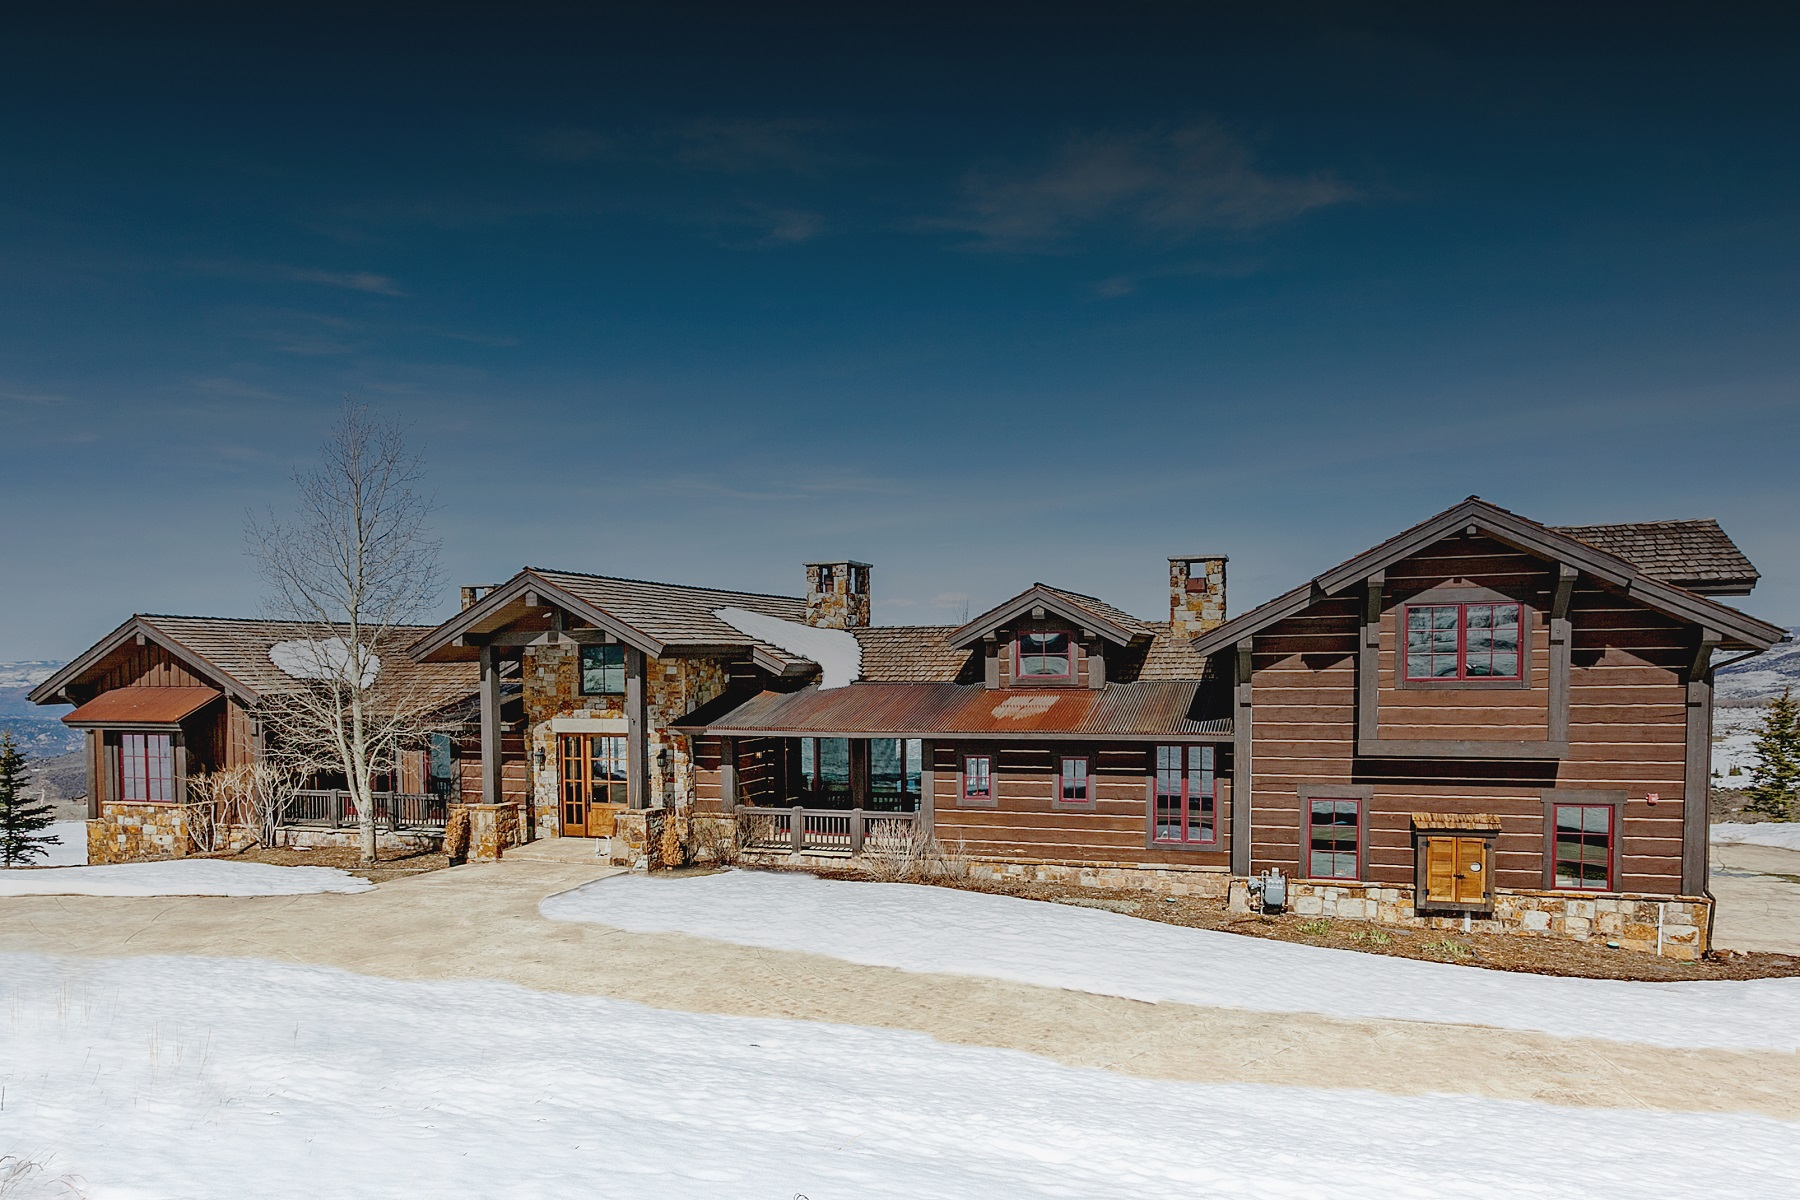 Single Family Home for Sale at Summit Golf Course custom home in Cordillera on the 8th hole. 1117 Summit Trail Cordillera, Edwards, Colorado, 81632 United States